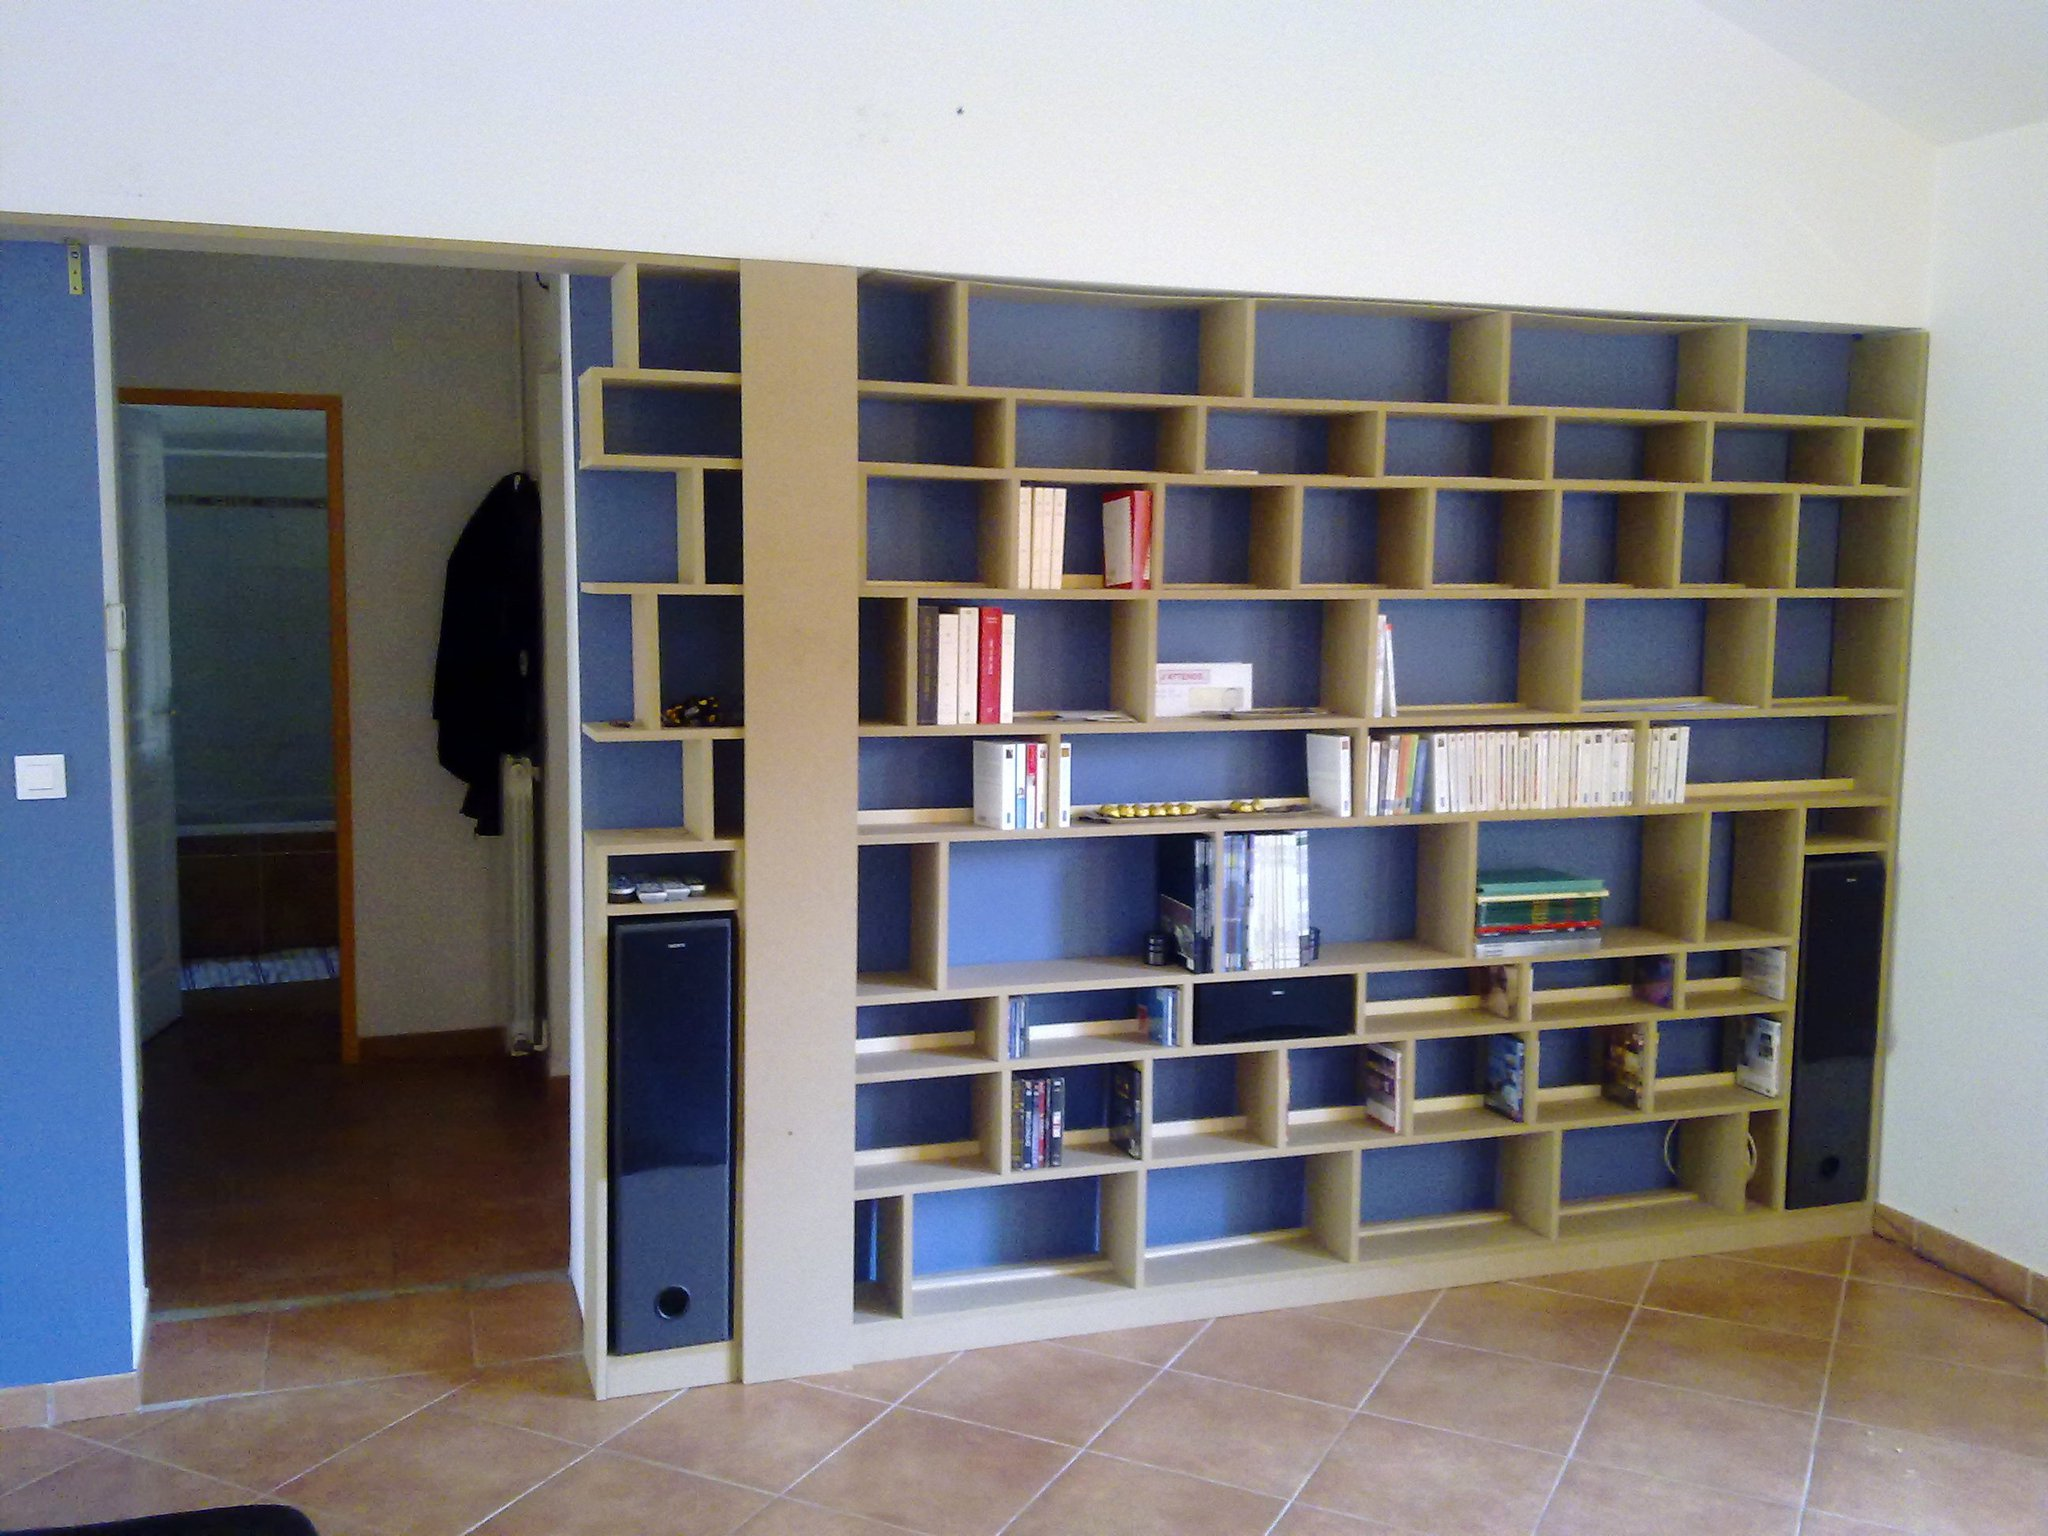 construire sa biblioth que sur mesure construction de notre maison rt2012. Black Bedroom Furniture Sets. Home Design Ideas